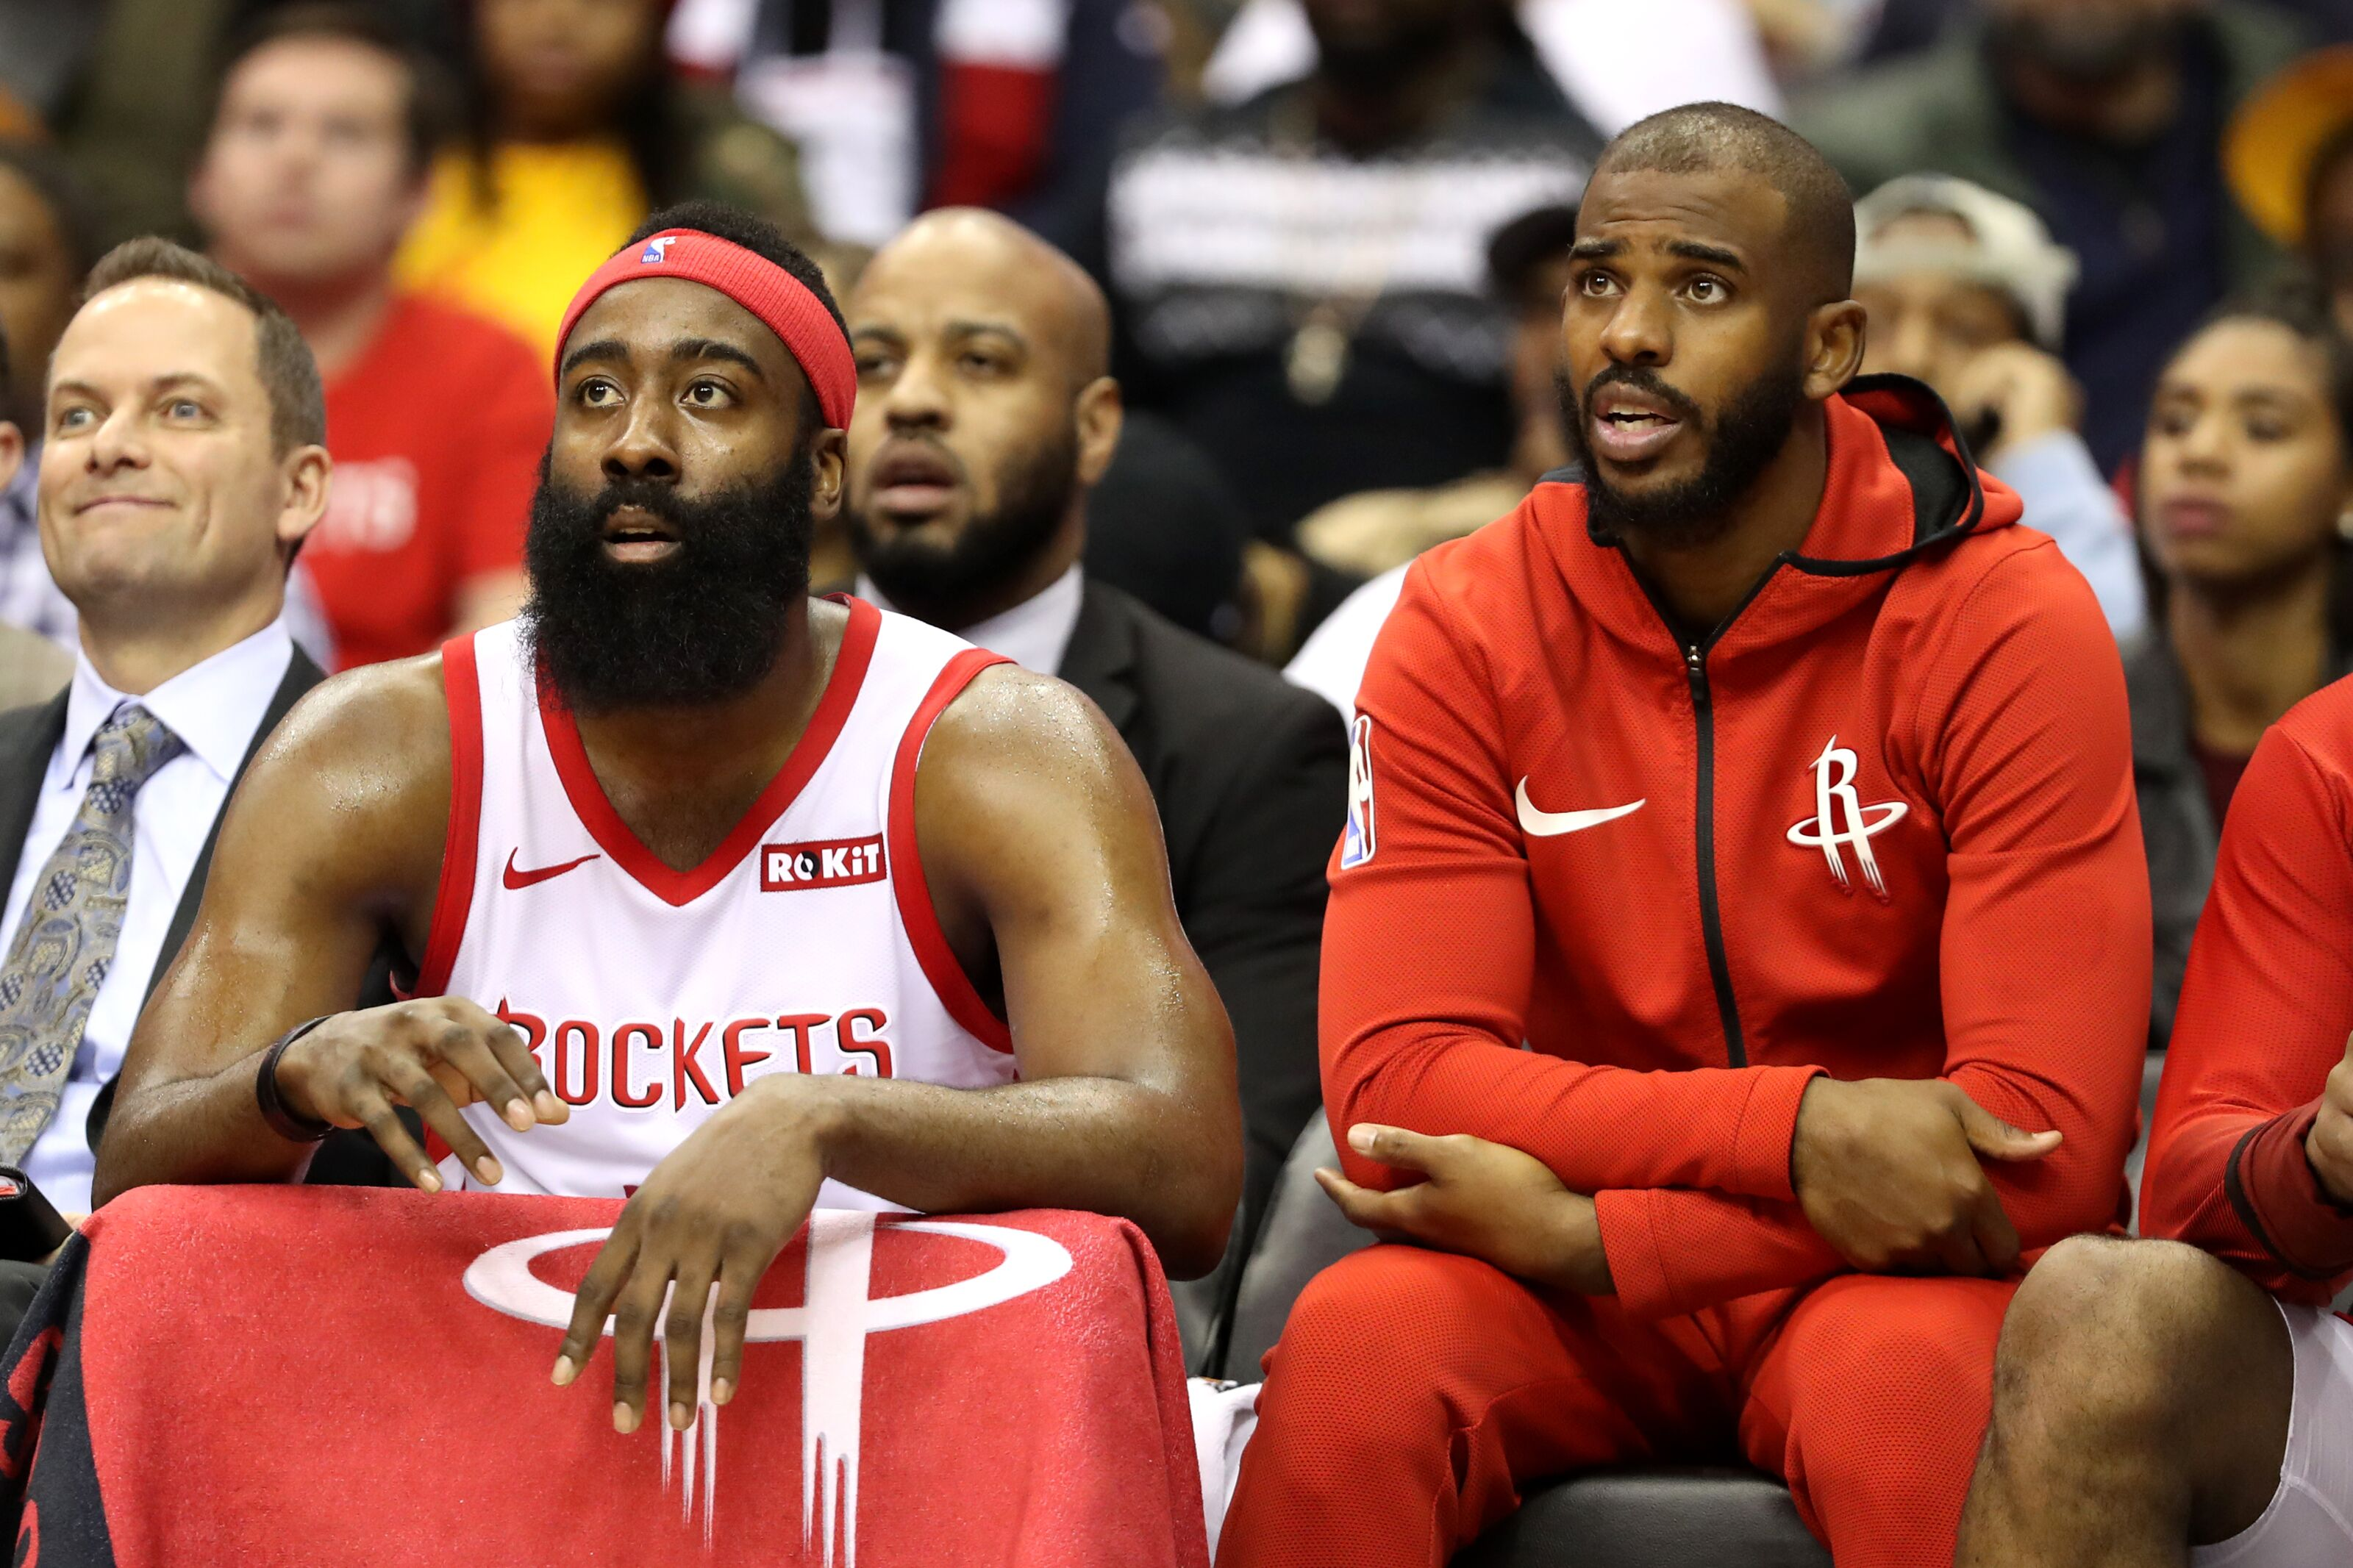 55a3246d1c3 Houston Rockets  The effects of missing a championship window